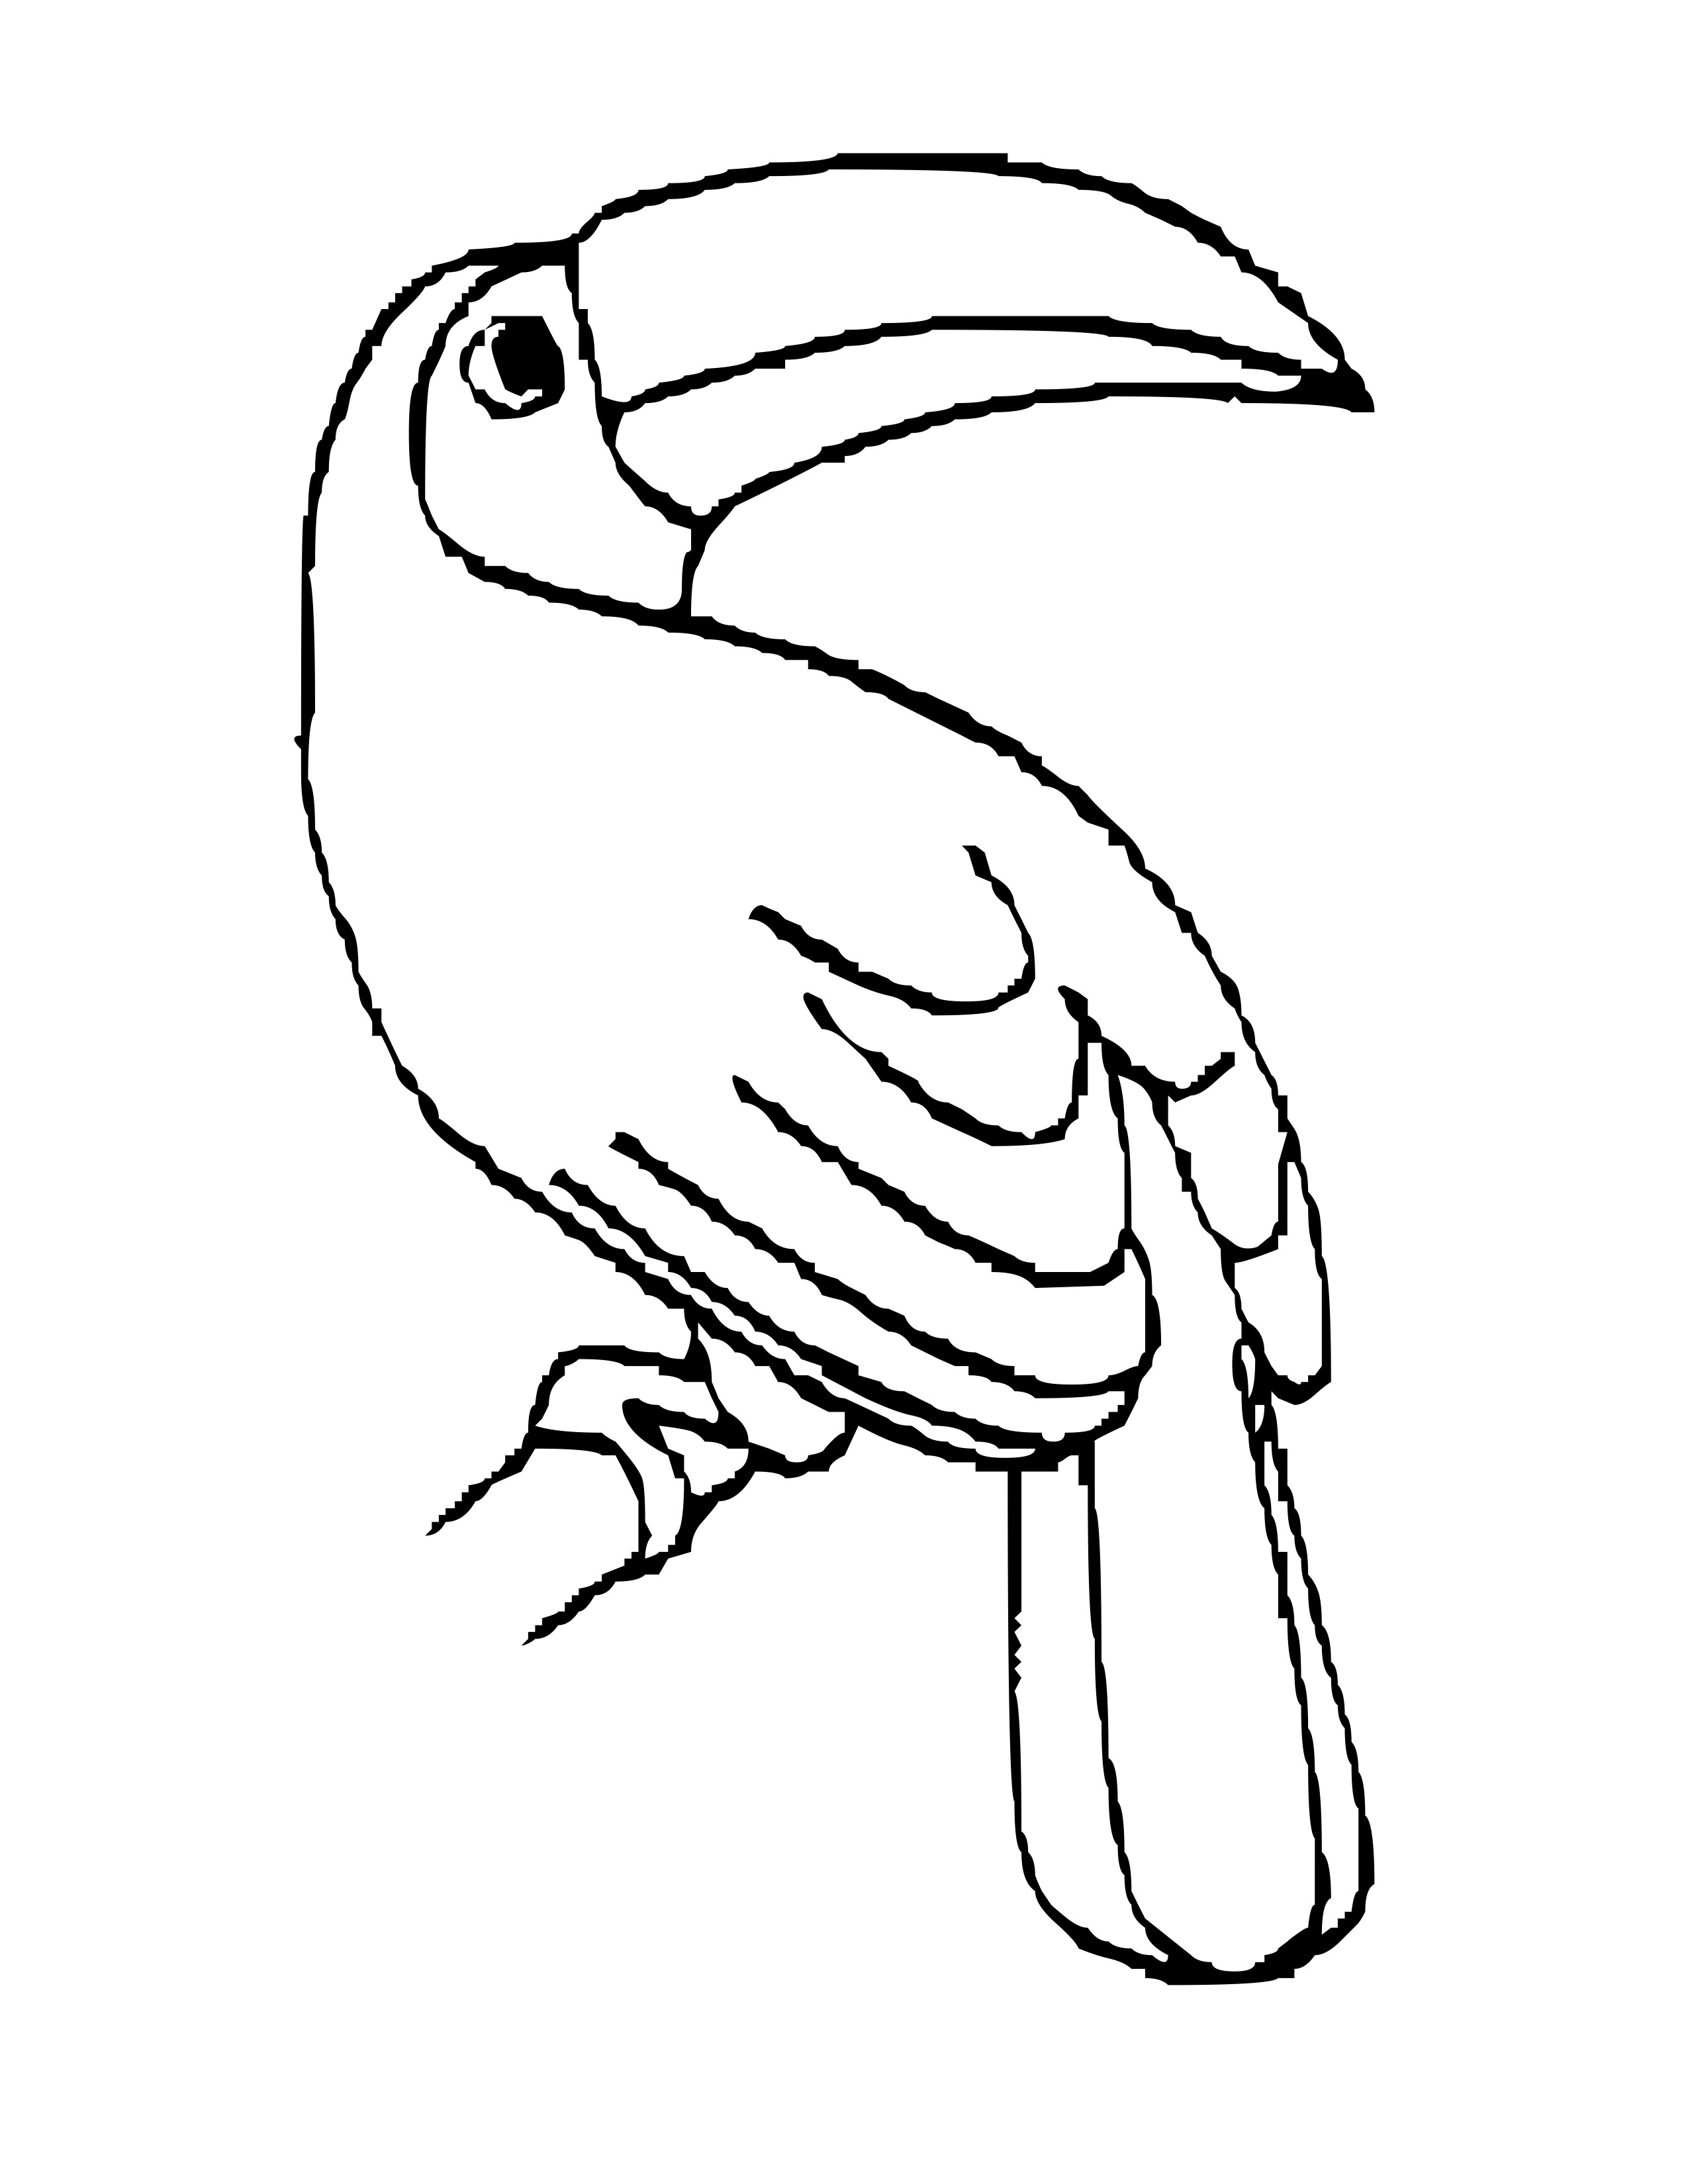 toucan coloring page bird coloring pages toucan page coloring